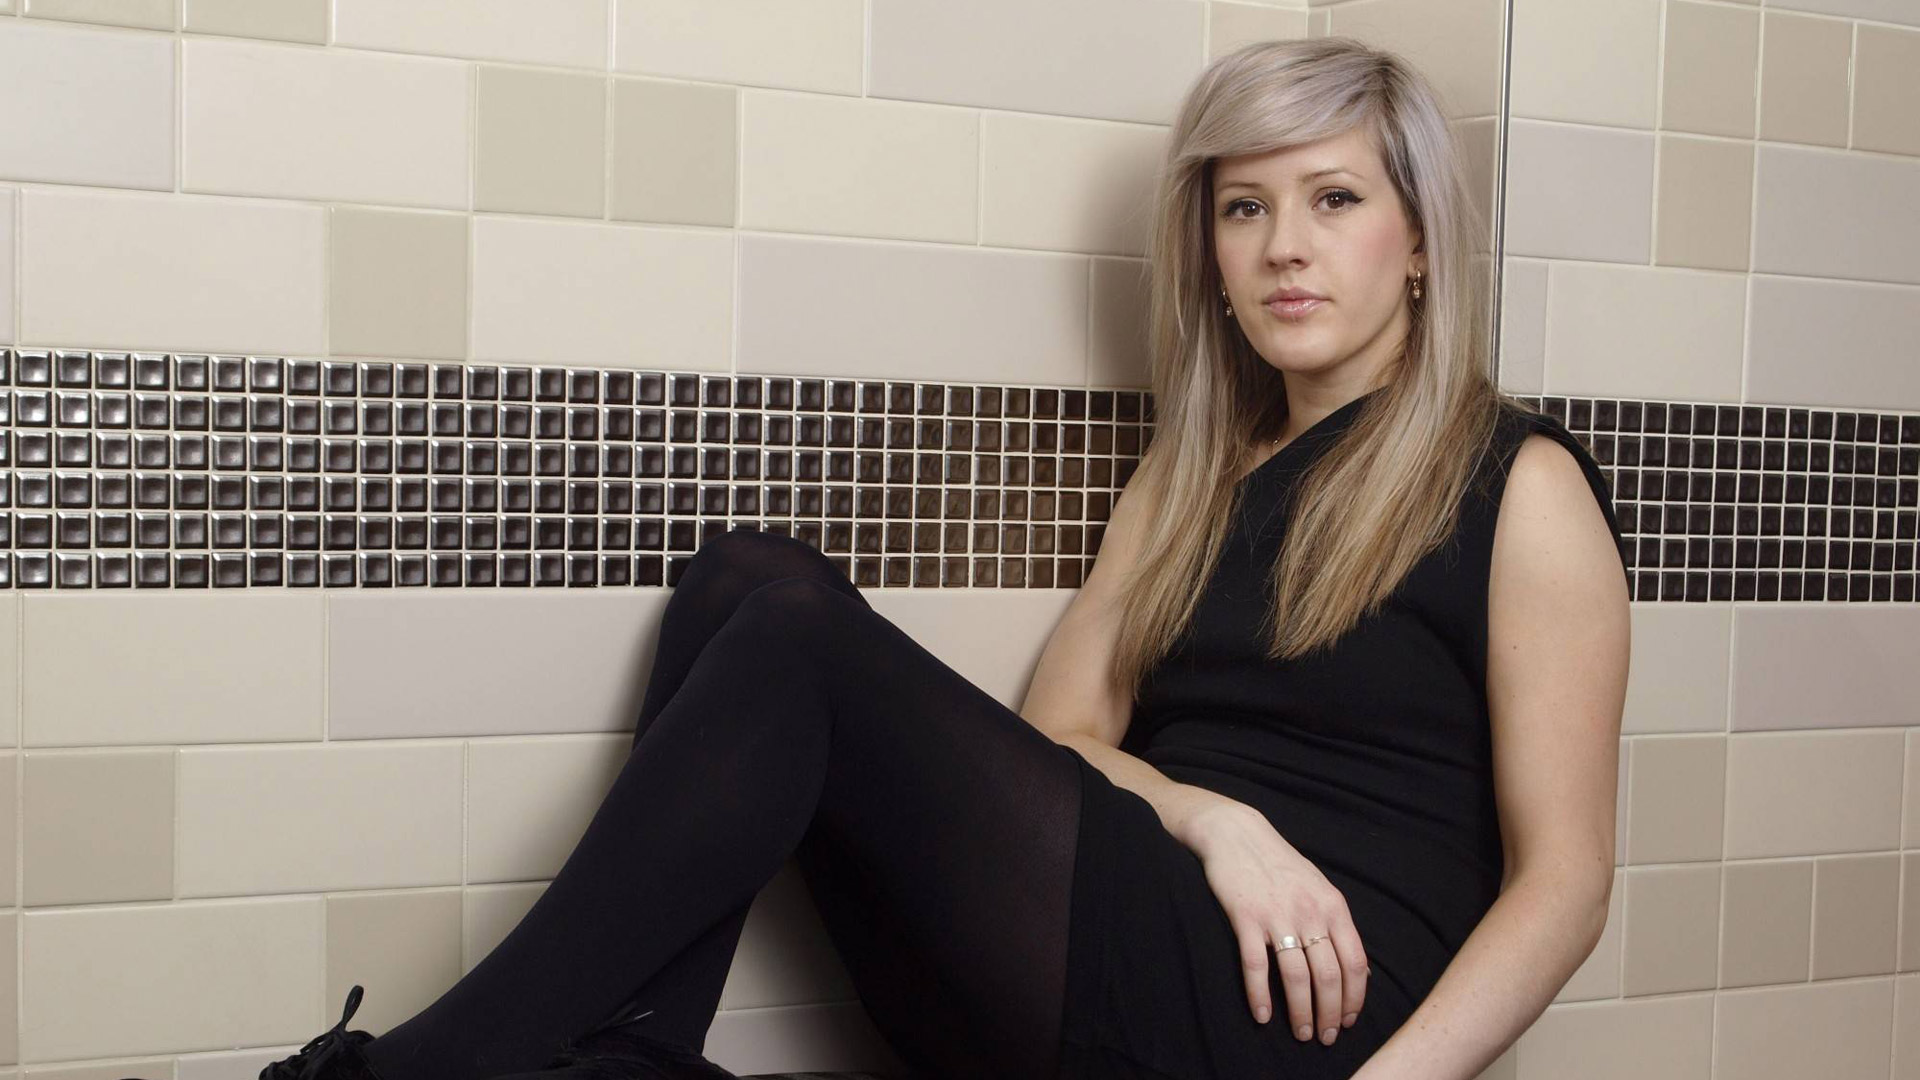 How Long Will I Love You av Ellie Goulding